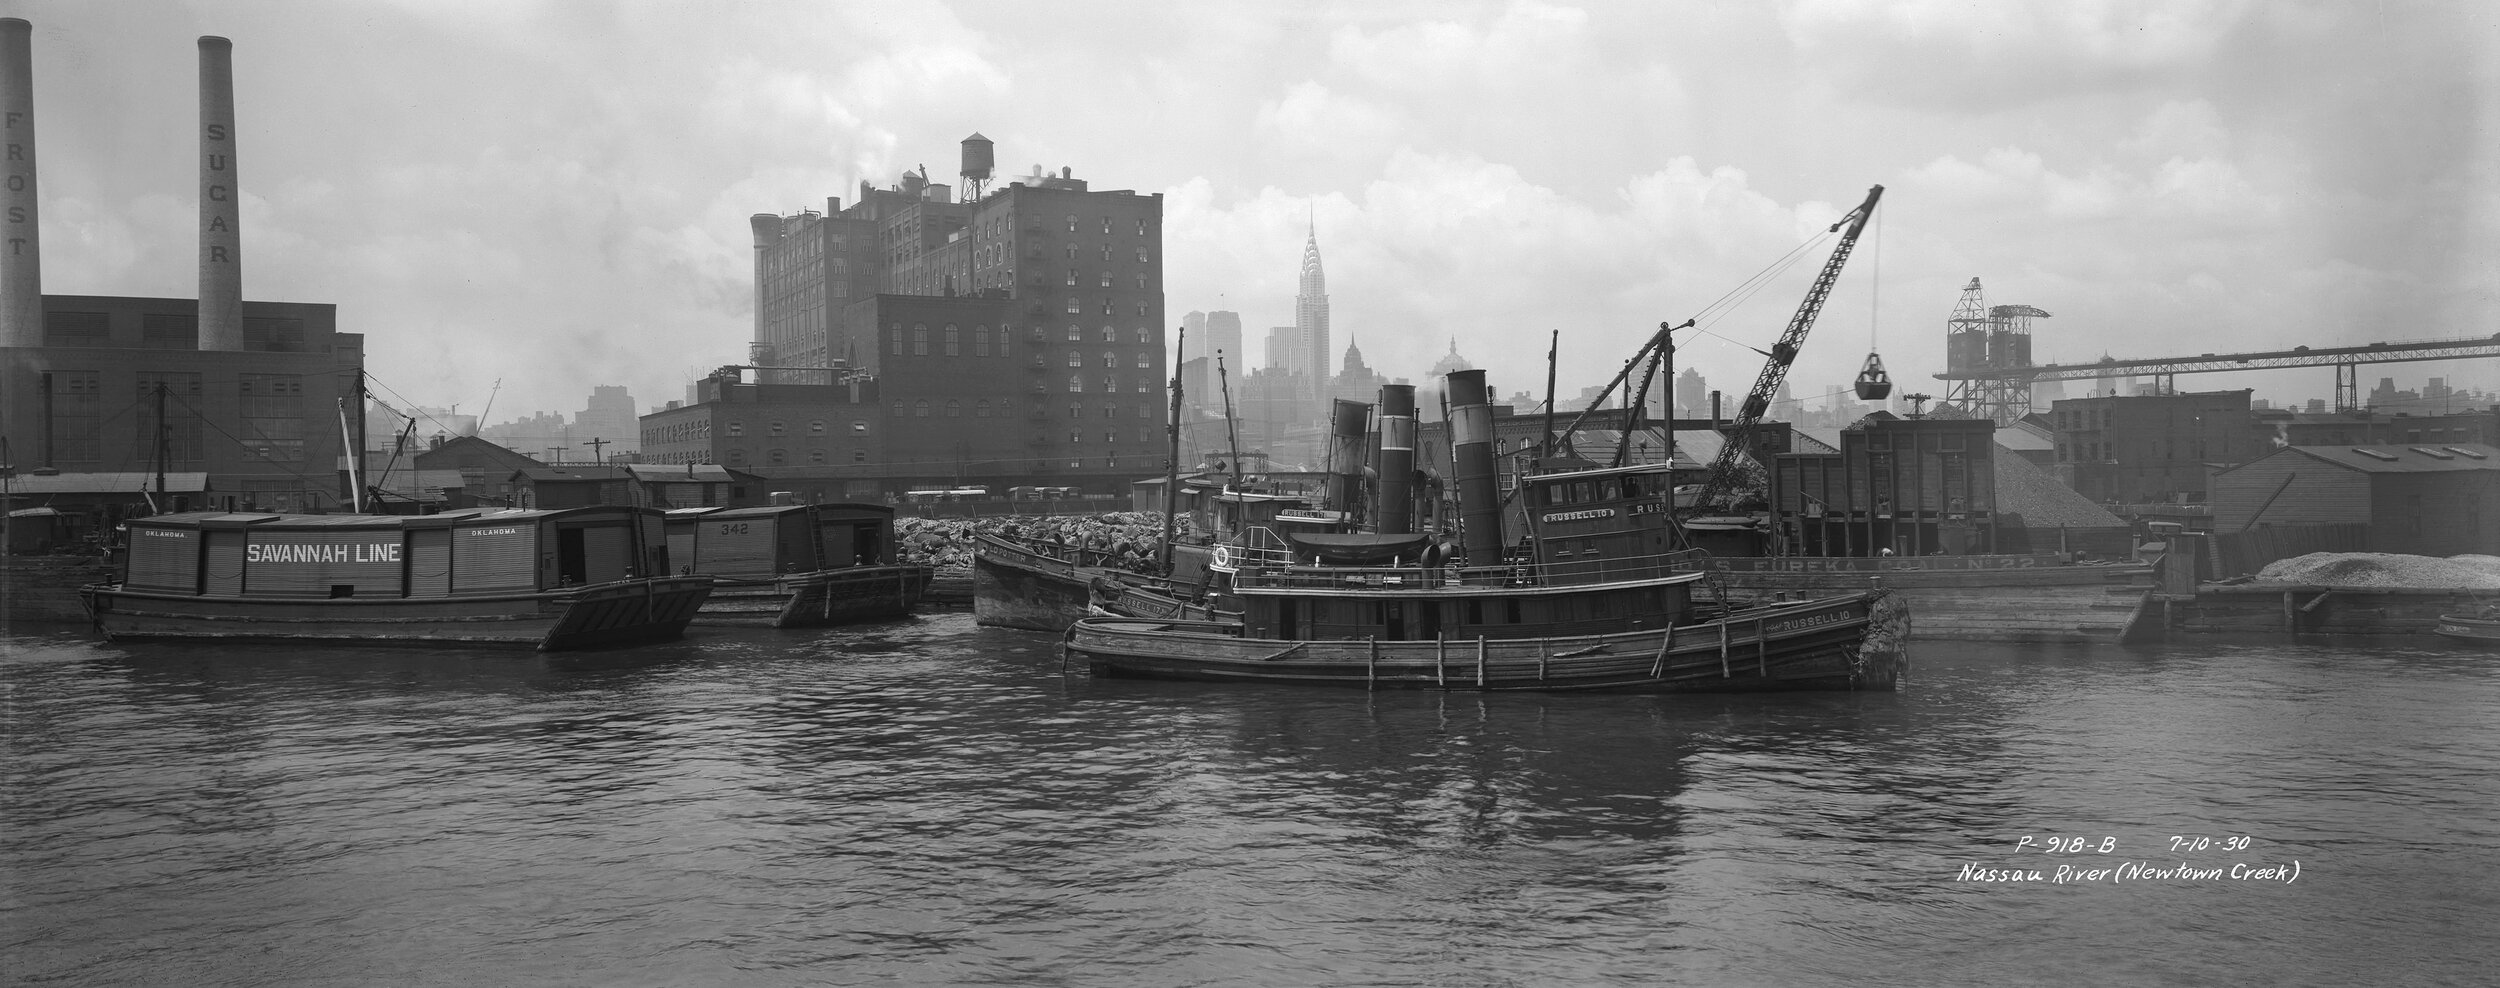 P-918-b:  Nassau River (Newtown Creek), July 10, 1930. The Chrysler Building is visible in the distant Manhattan skyline. Borough President Queens Collection, NYC Municipal Archives.